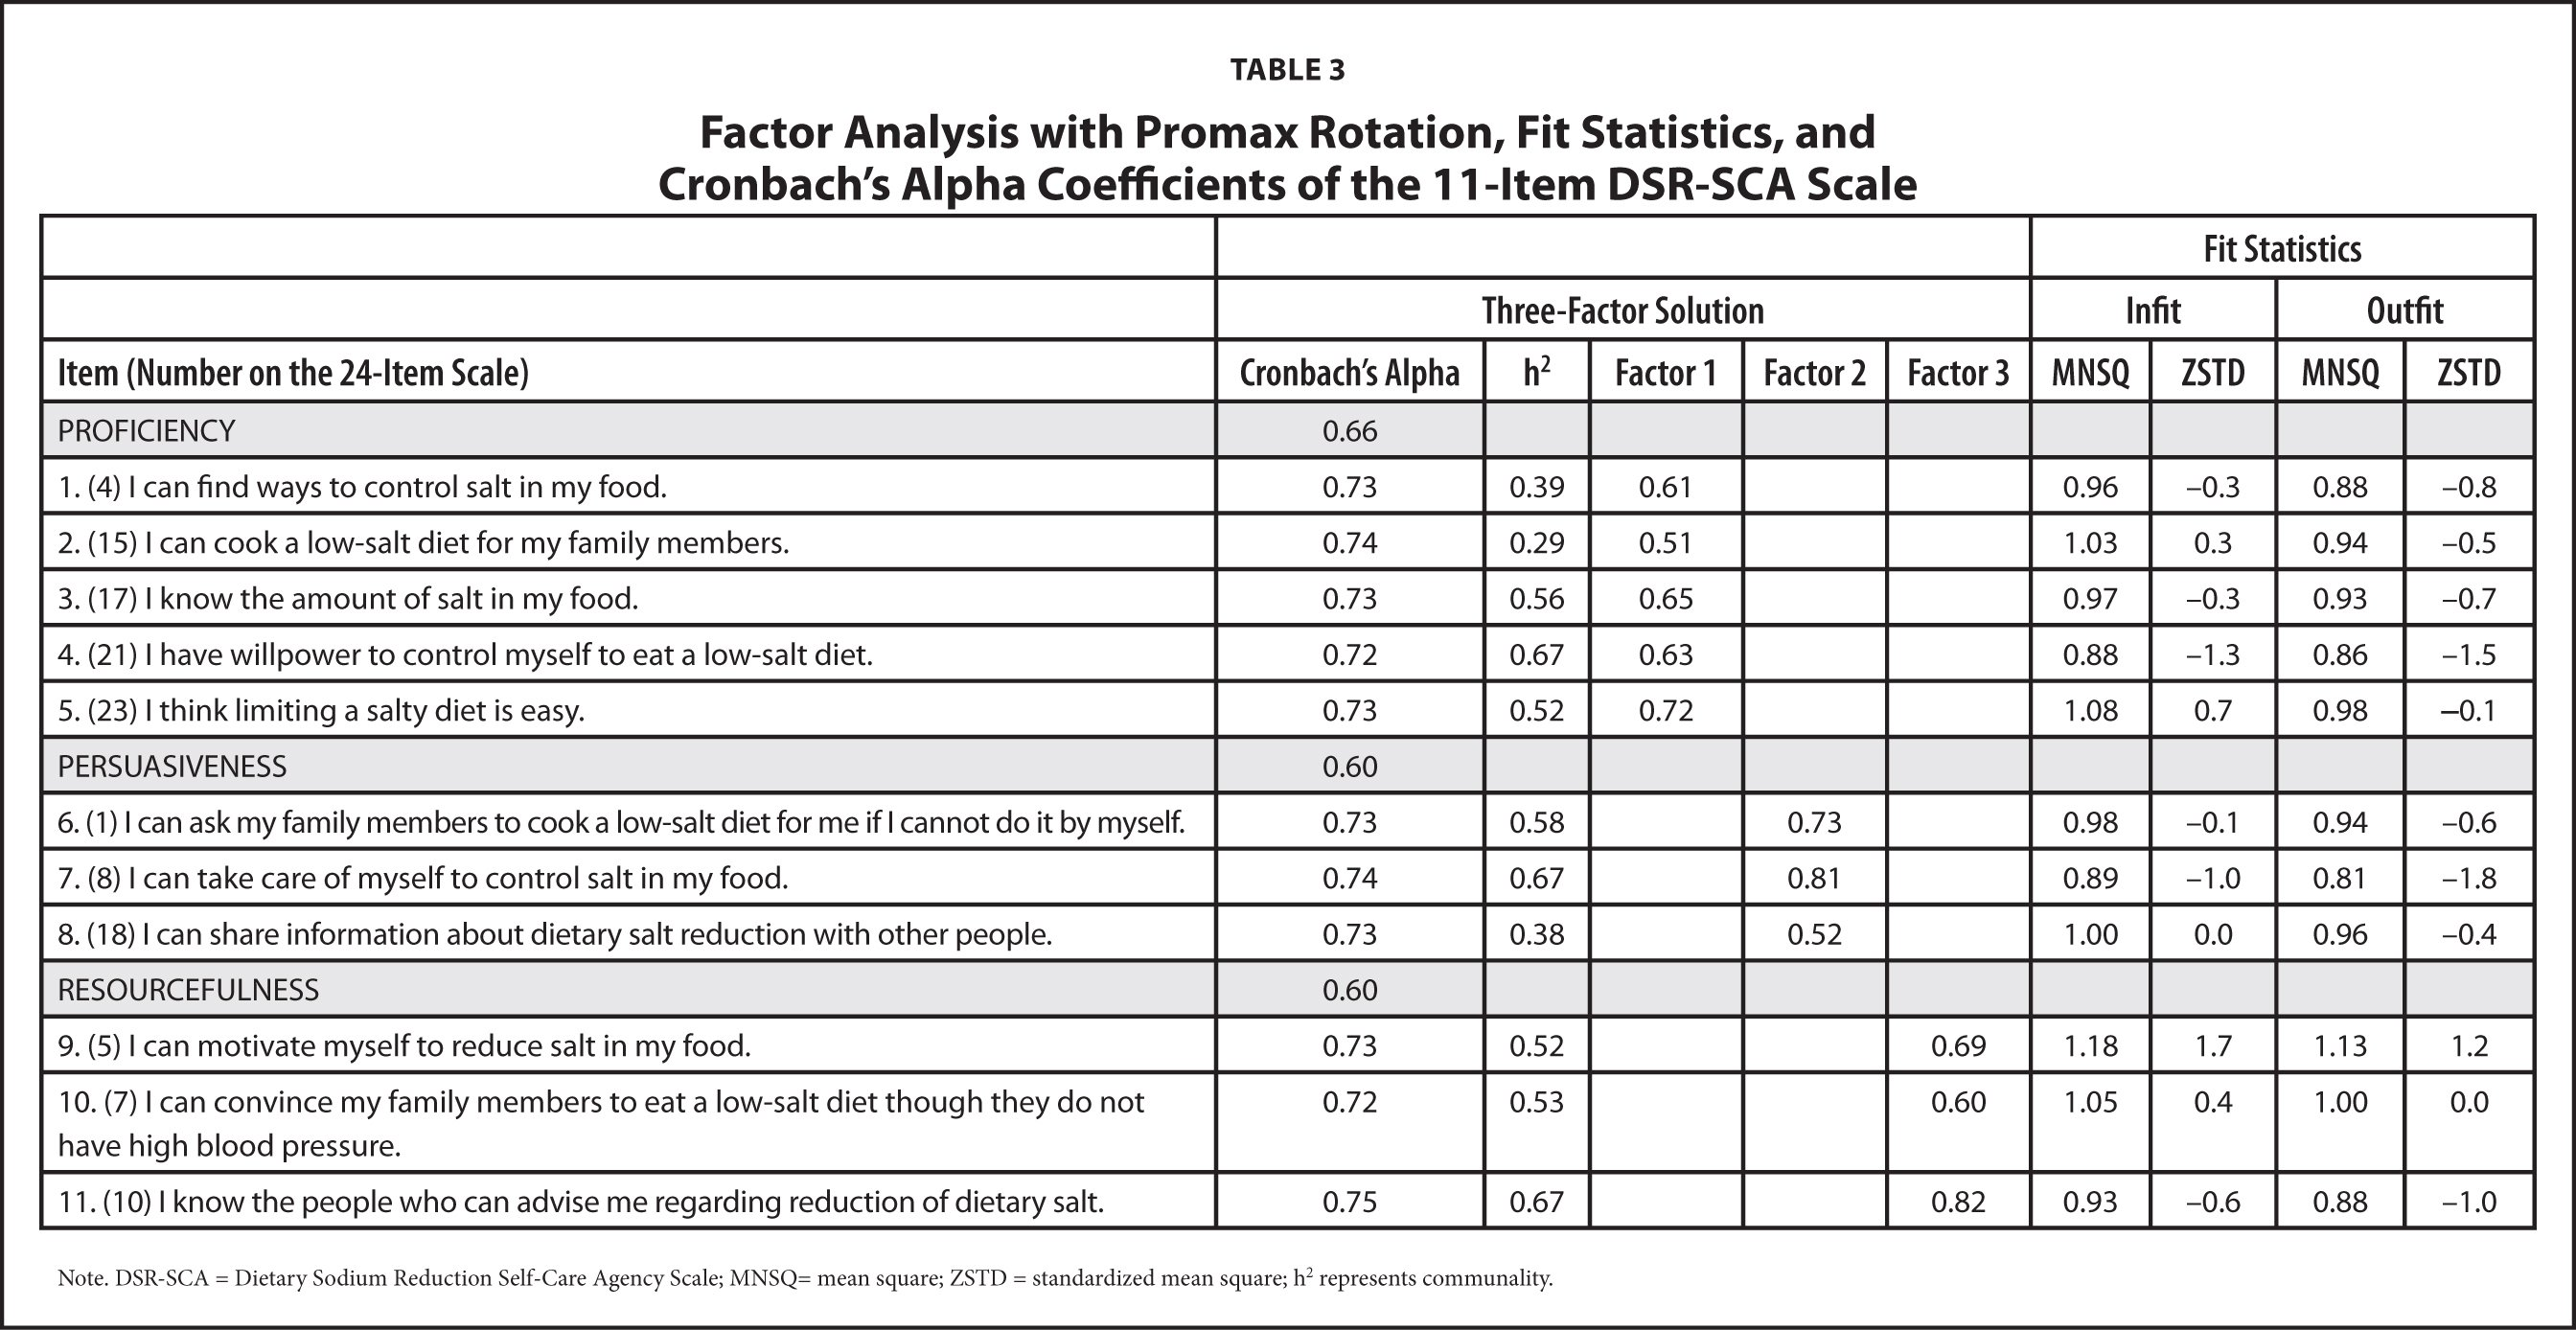 Factor Analysis with Promax Rotation, Fit Statistics, and Cronbach's Alpha Coefficients of the 11-Item DSR-SCA Scale